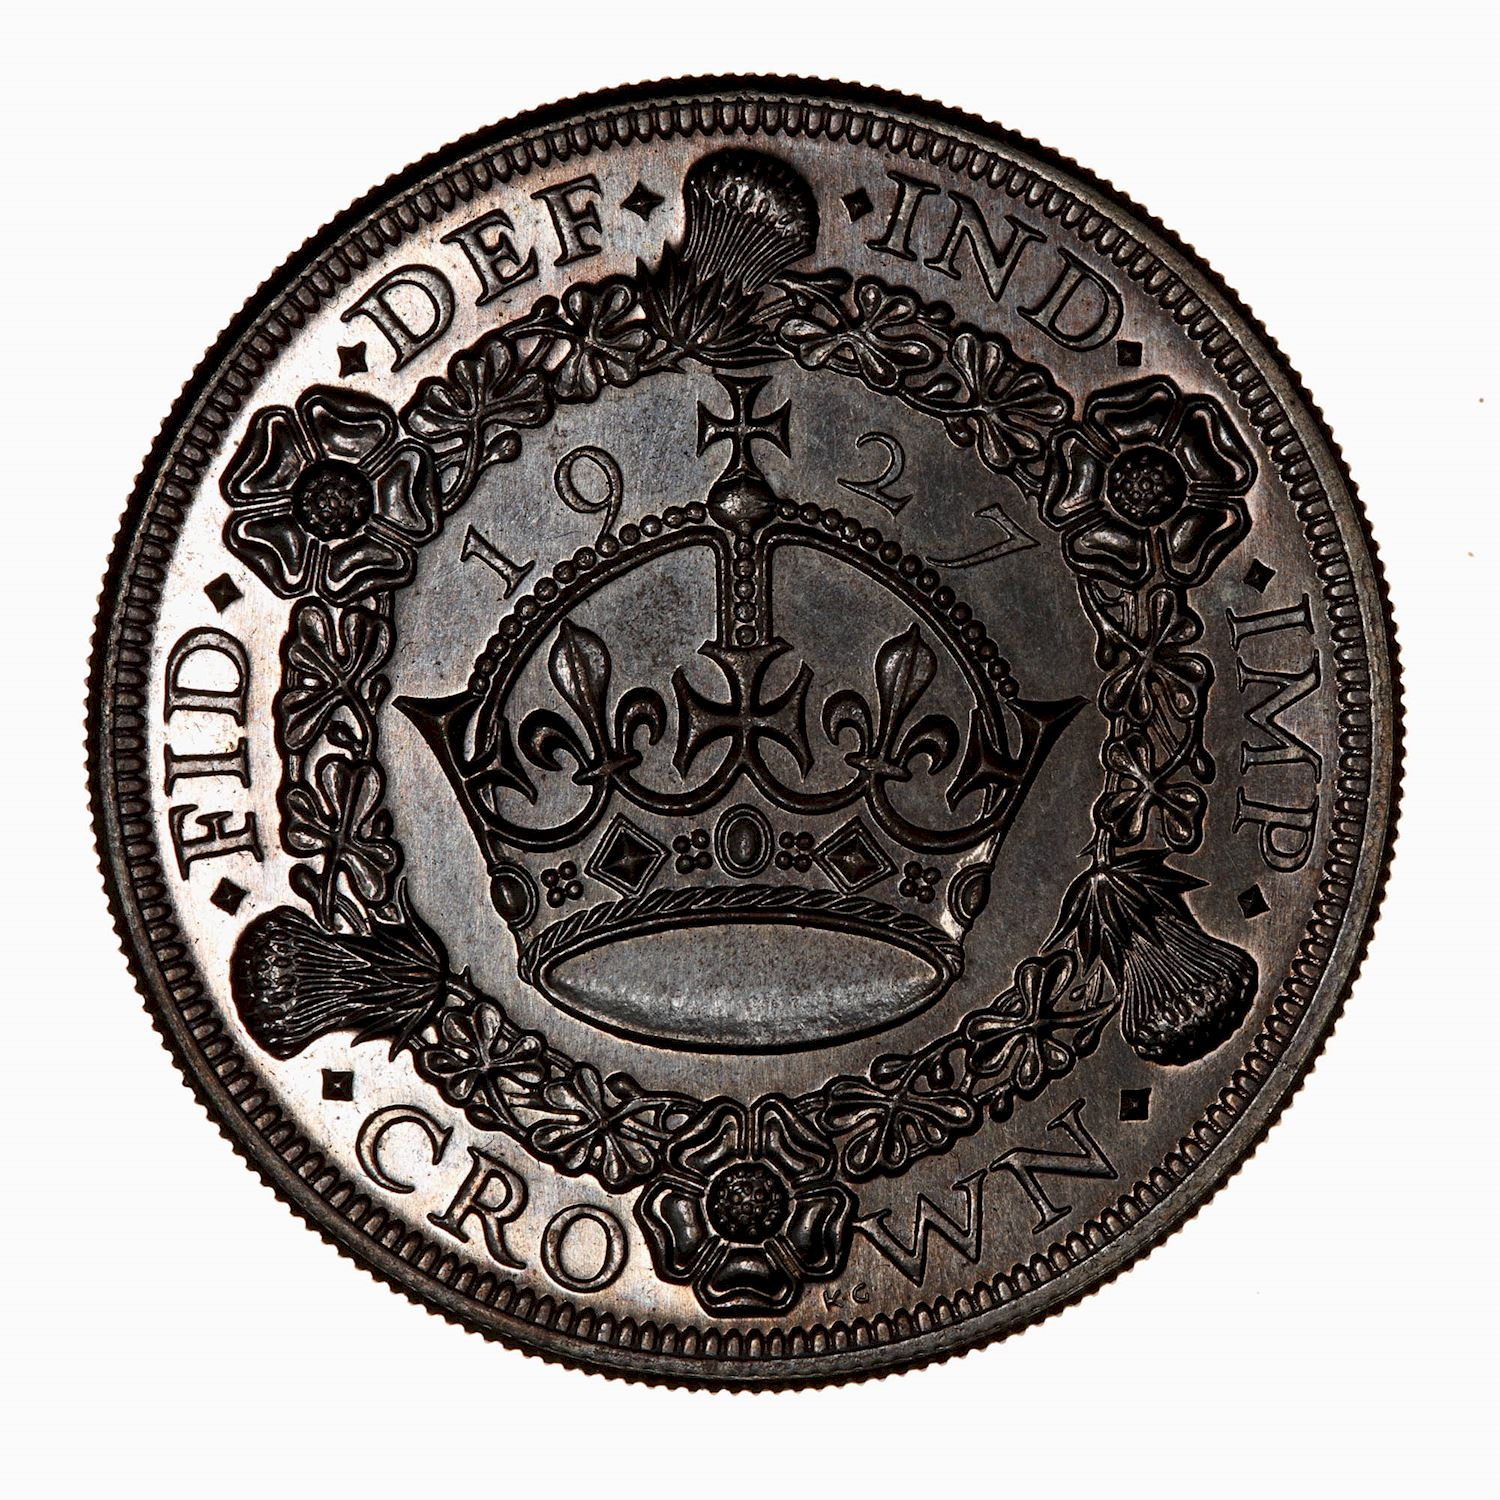 Crown (Wreath): Photo Proof Coin - Crown, George V, Great Britain, 1927